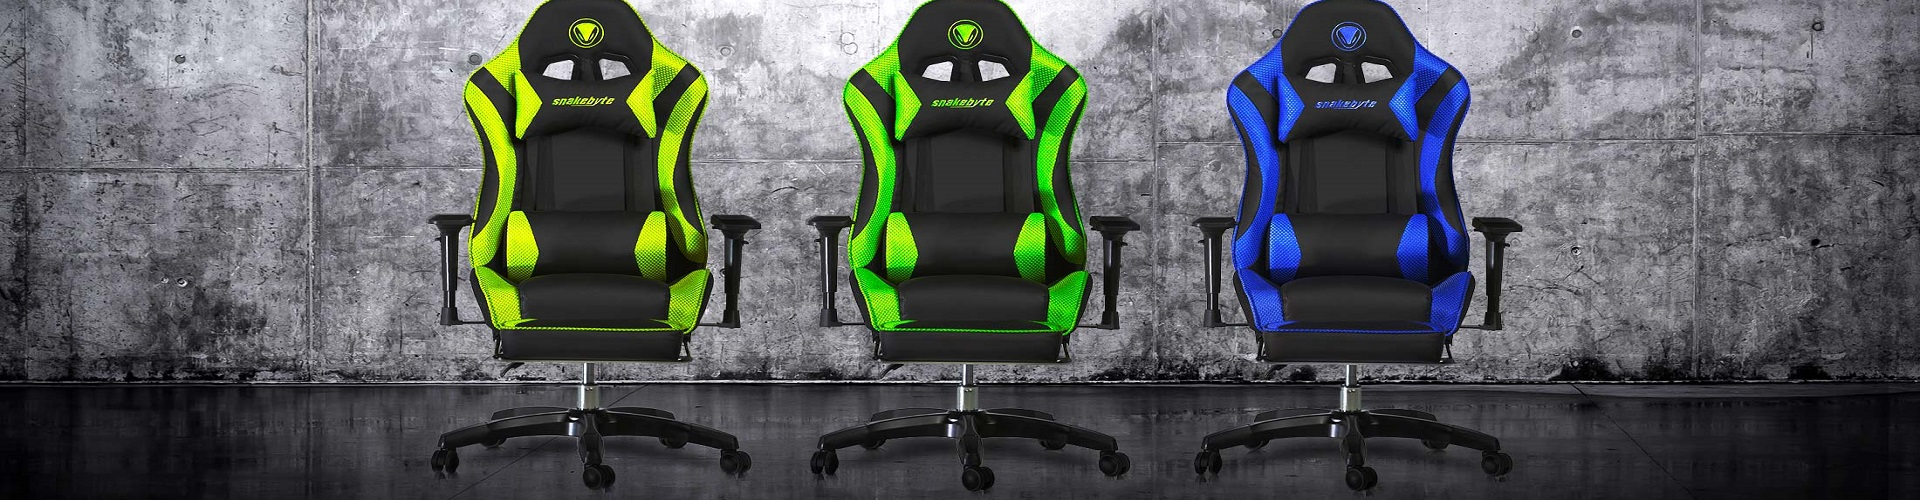 Stupendous Snakebyte Gaming Seat Review Xbox Tavern Andrewgaddart Wooden Chair Designs For Living Room Andrewgaddartcom